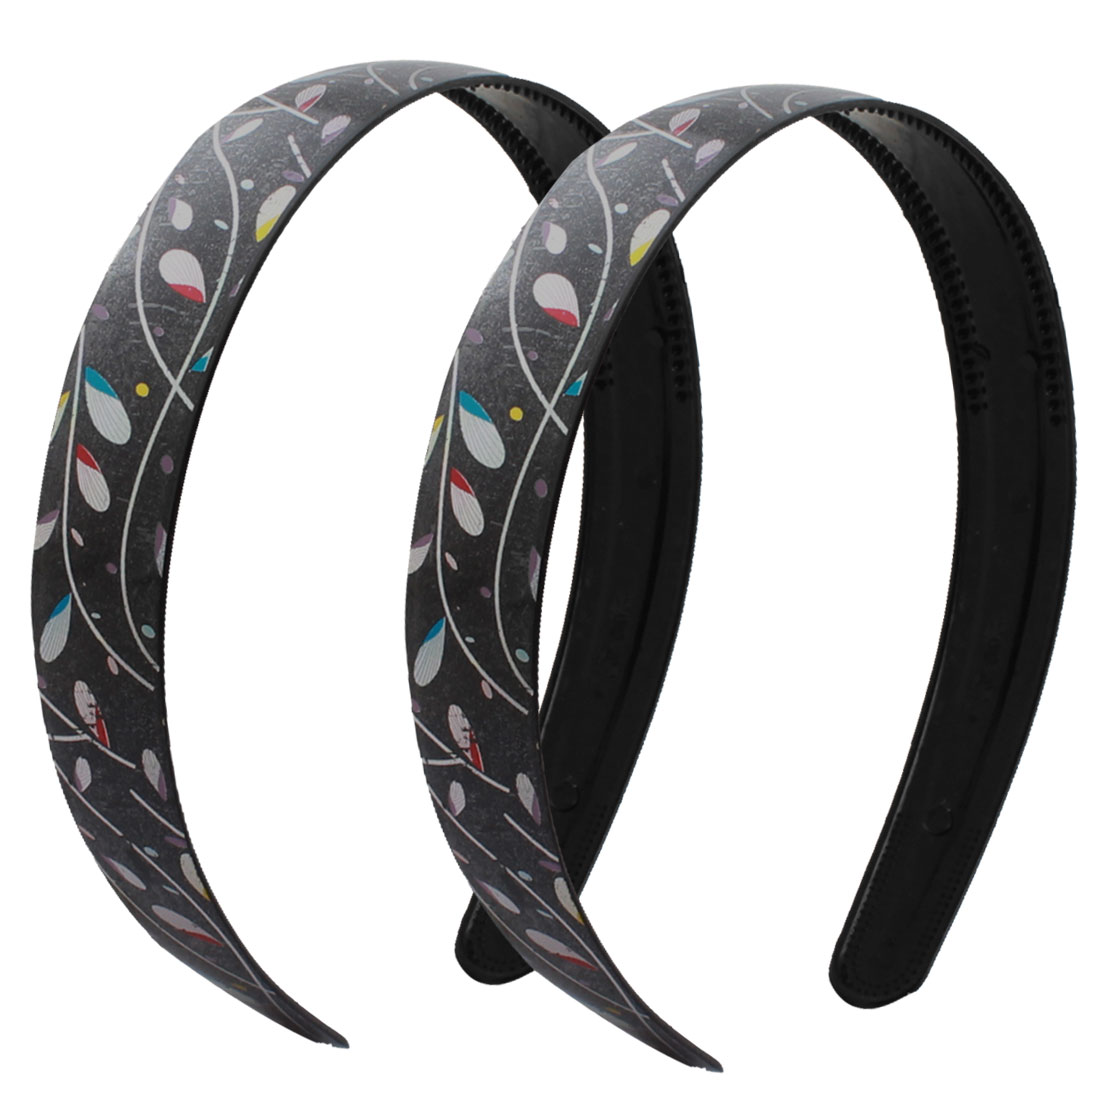 2 Pcs Headdressing Tree Prints Black Hair Head Hoop Headband for Women